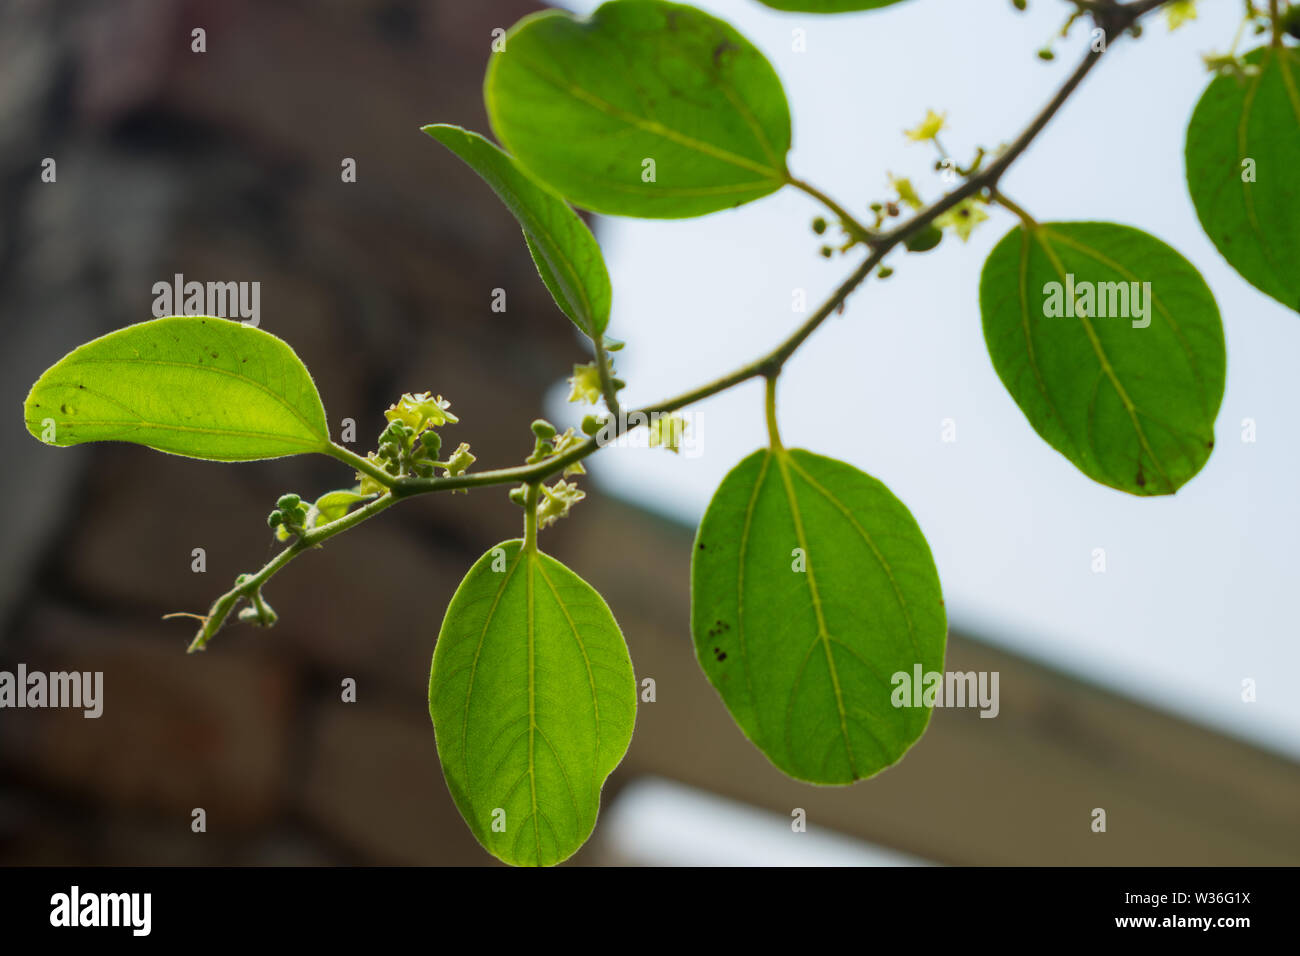 close up of ziziphus jujube leaves with blurred background. Stock Photo